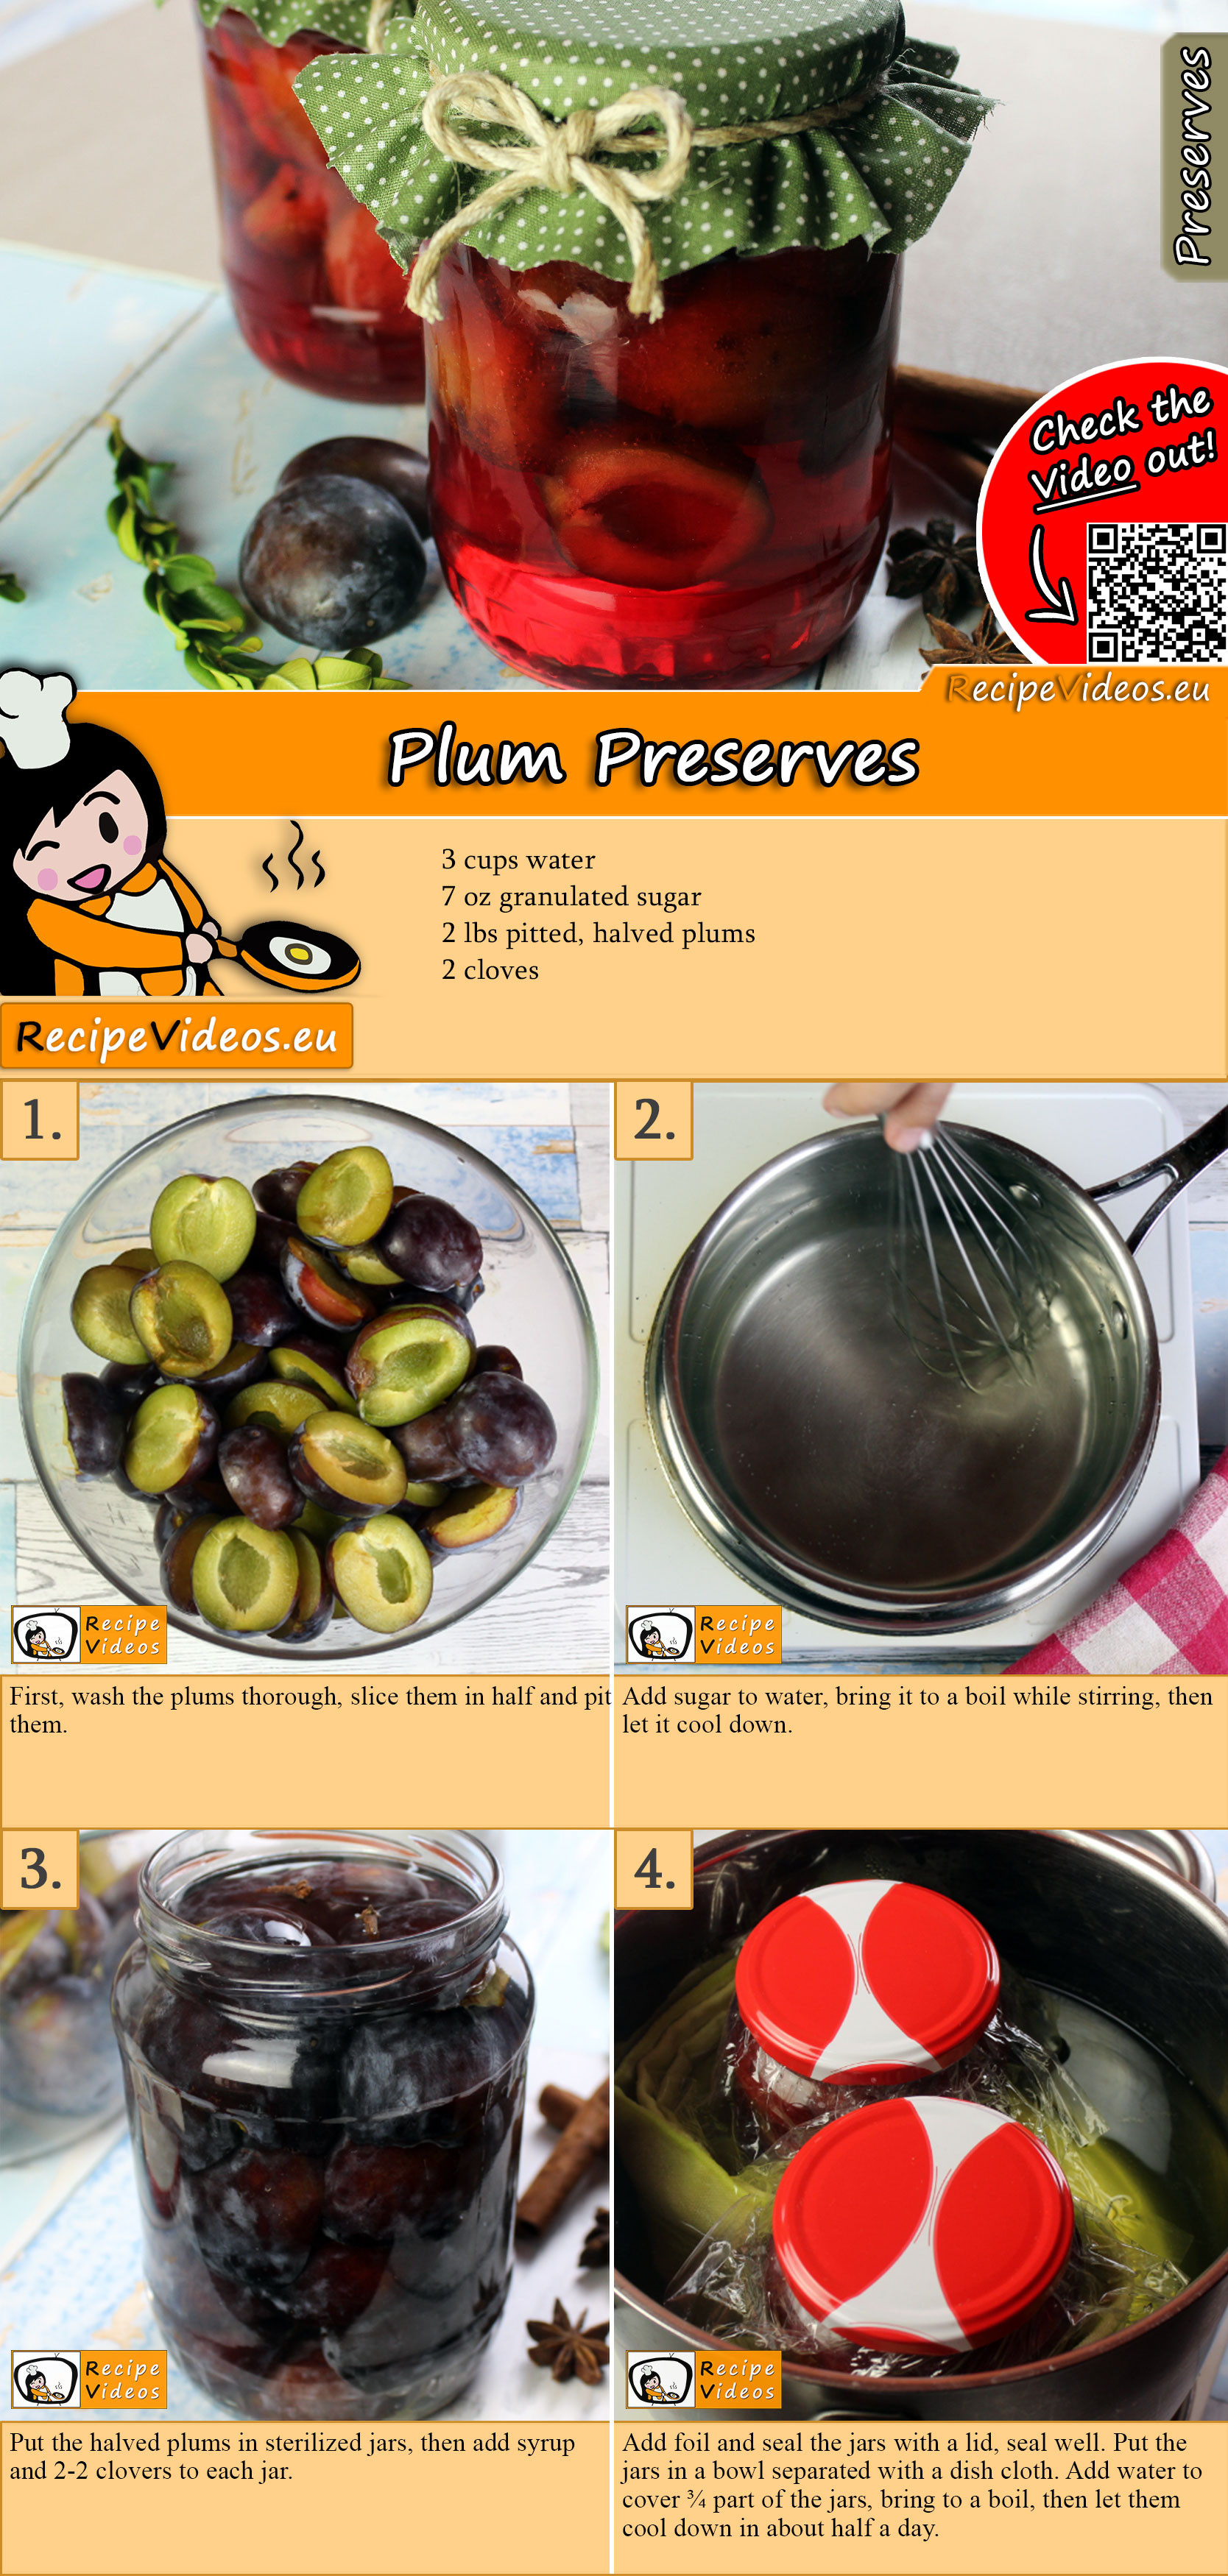 Plum Preserves recipe with video